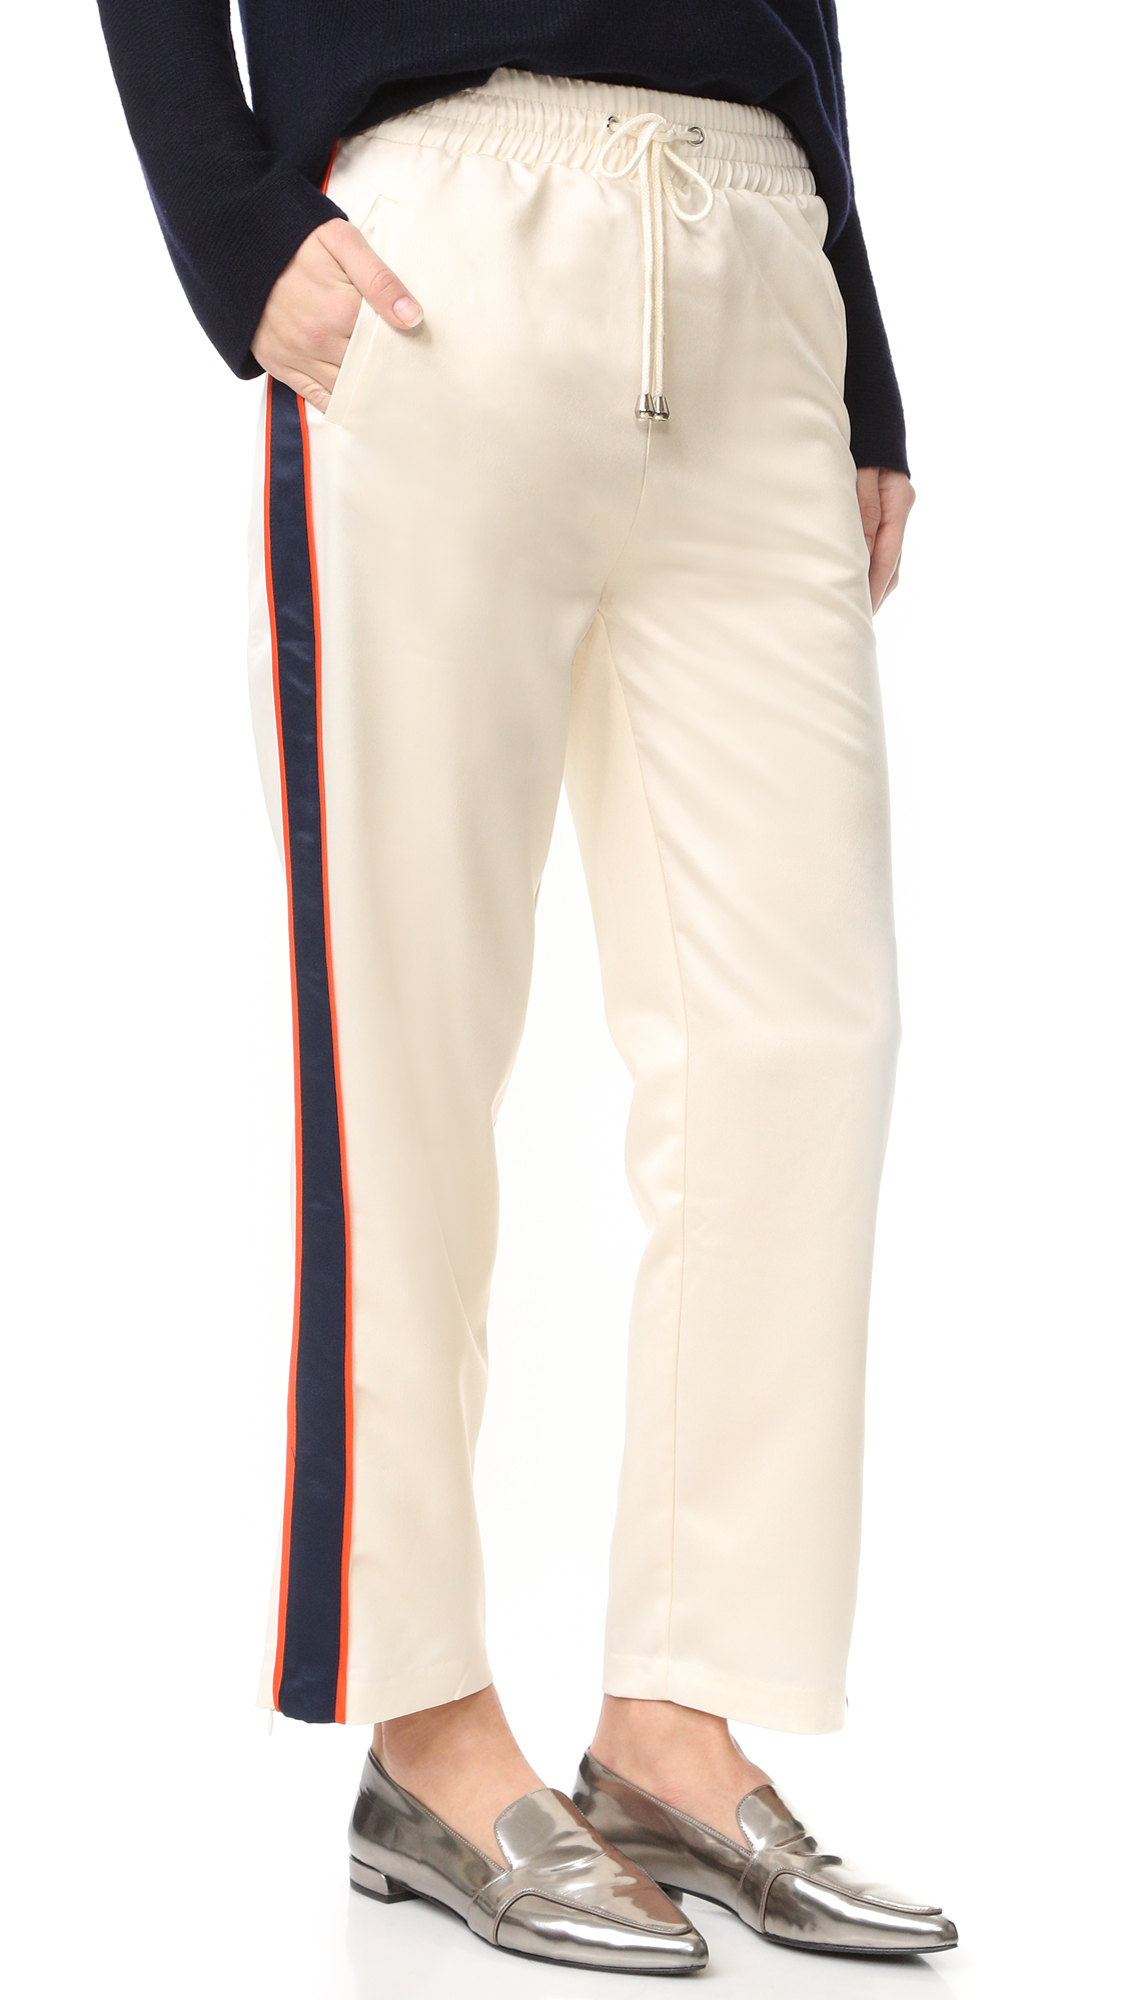 Bold tuxedo stripes add a sporty touch to these lustrous satin endless rose pants. A drawstring cinches the smocked elastic waistband. Welt hip pockets and faux back pockets. Hidden ankle zips. Fabric: Satin. 100% polyester. Hand wash.